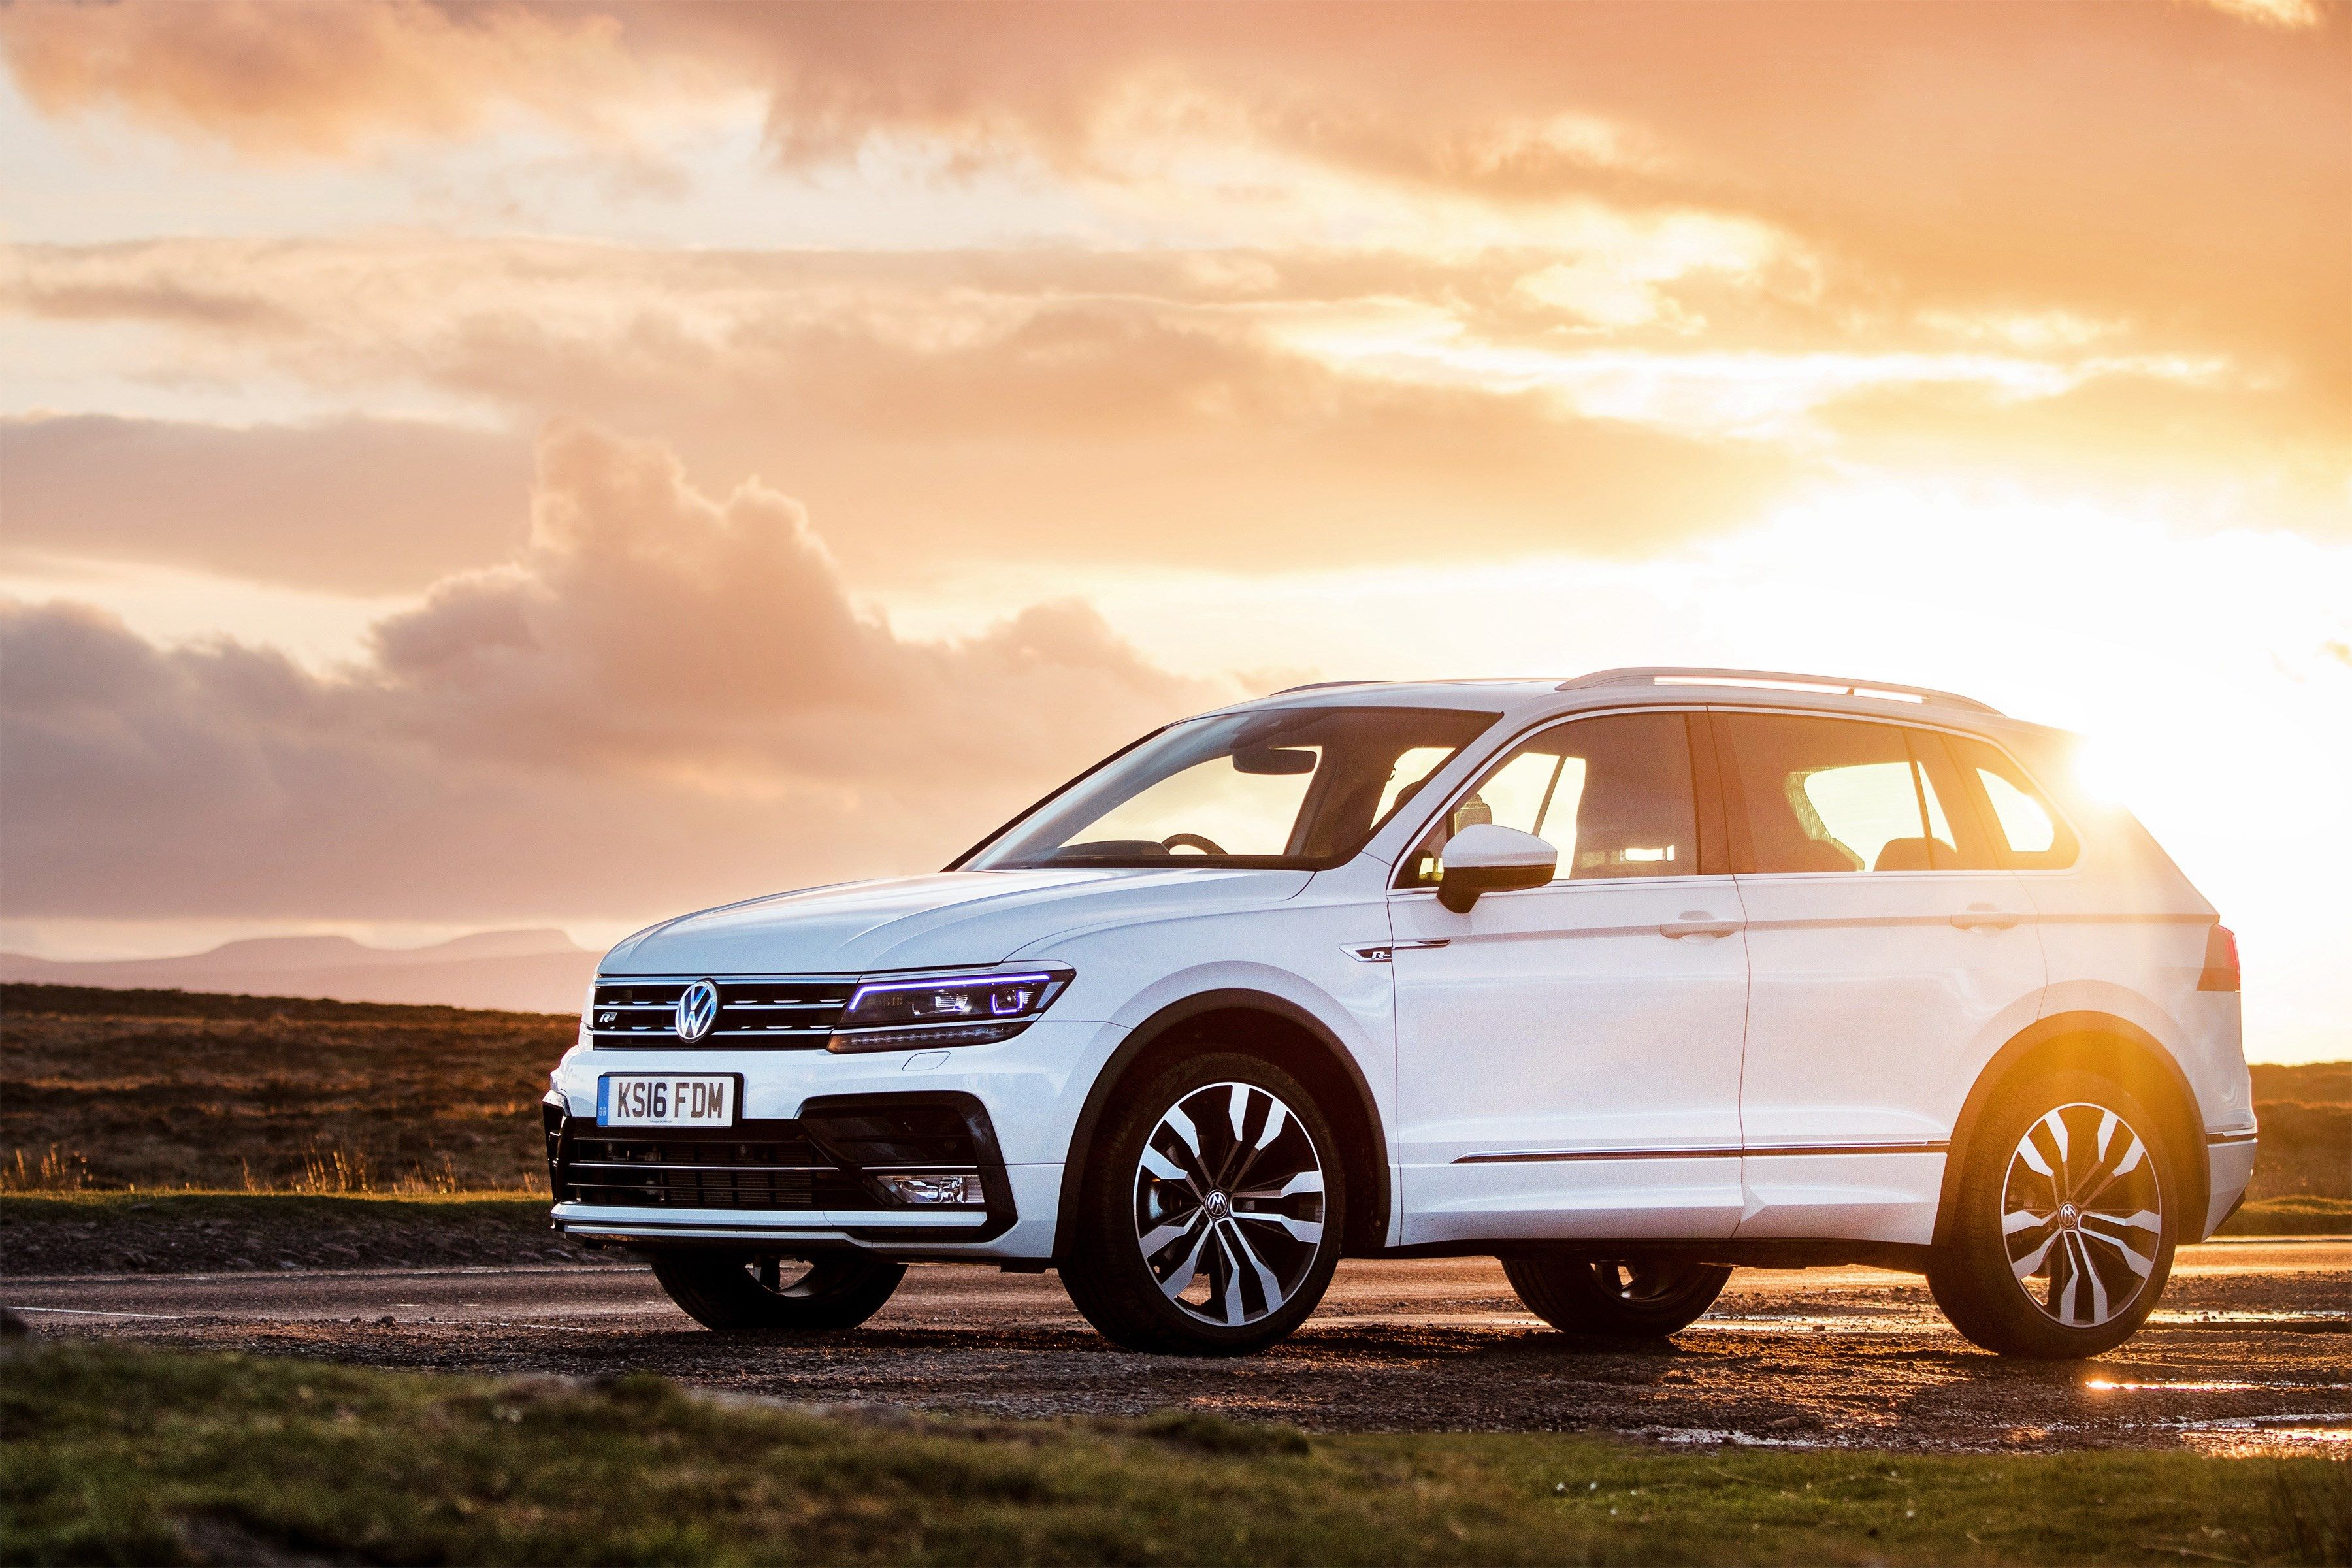 Free Volkswagen Tiguan Image Anjanette Holiday 2017 03 22 Volkswagen Dream Cars White Jeep